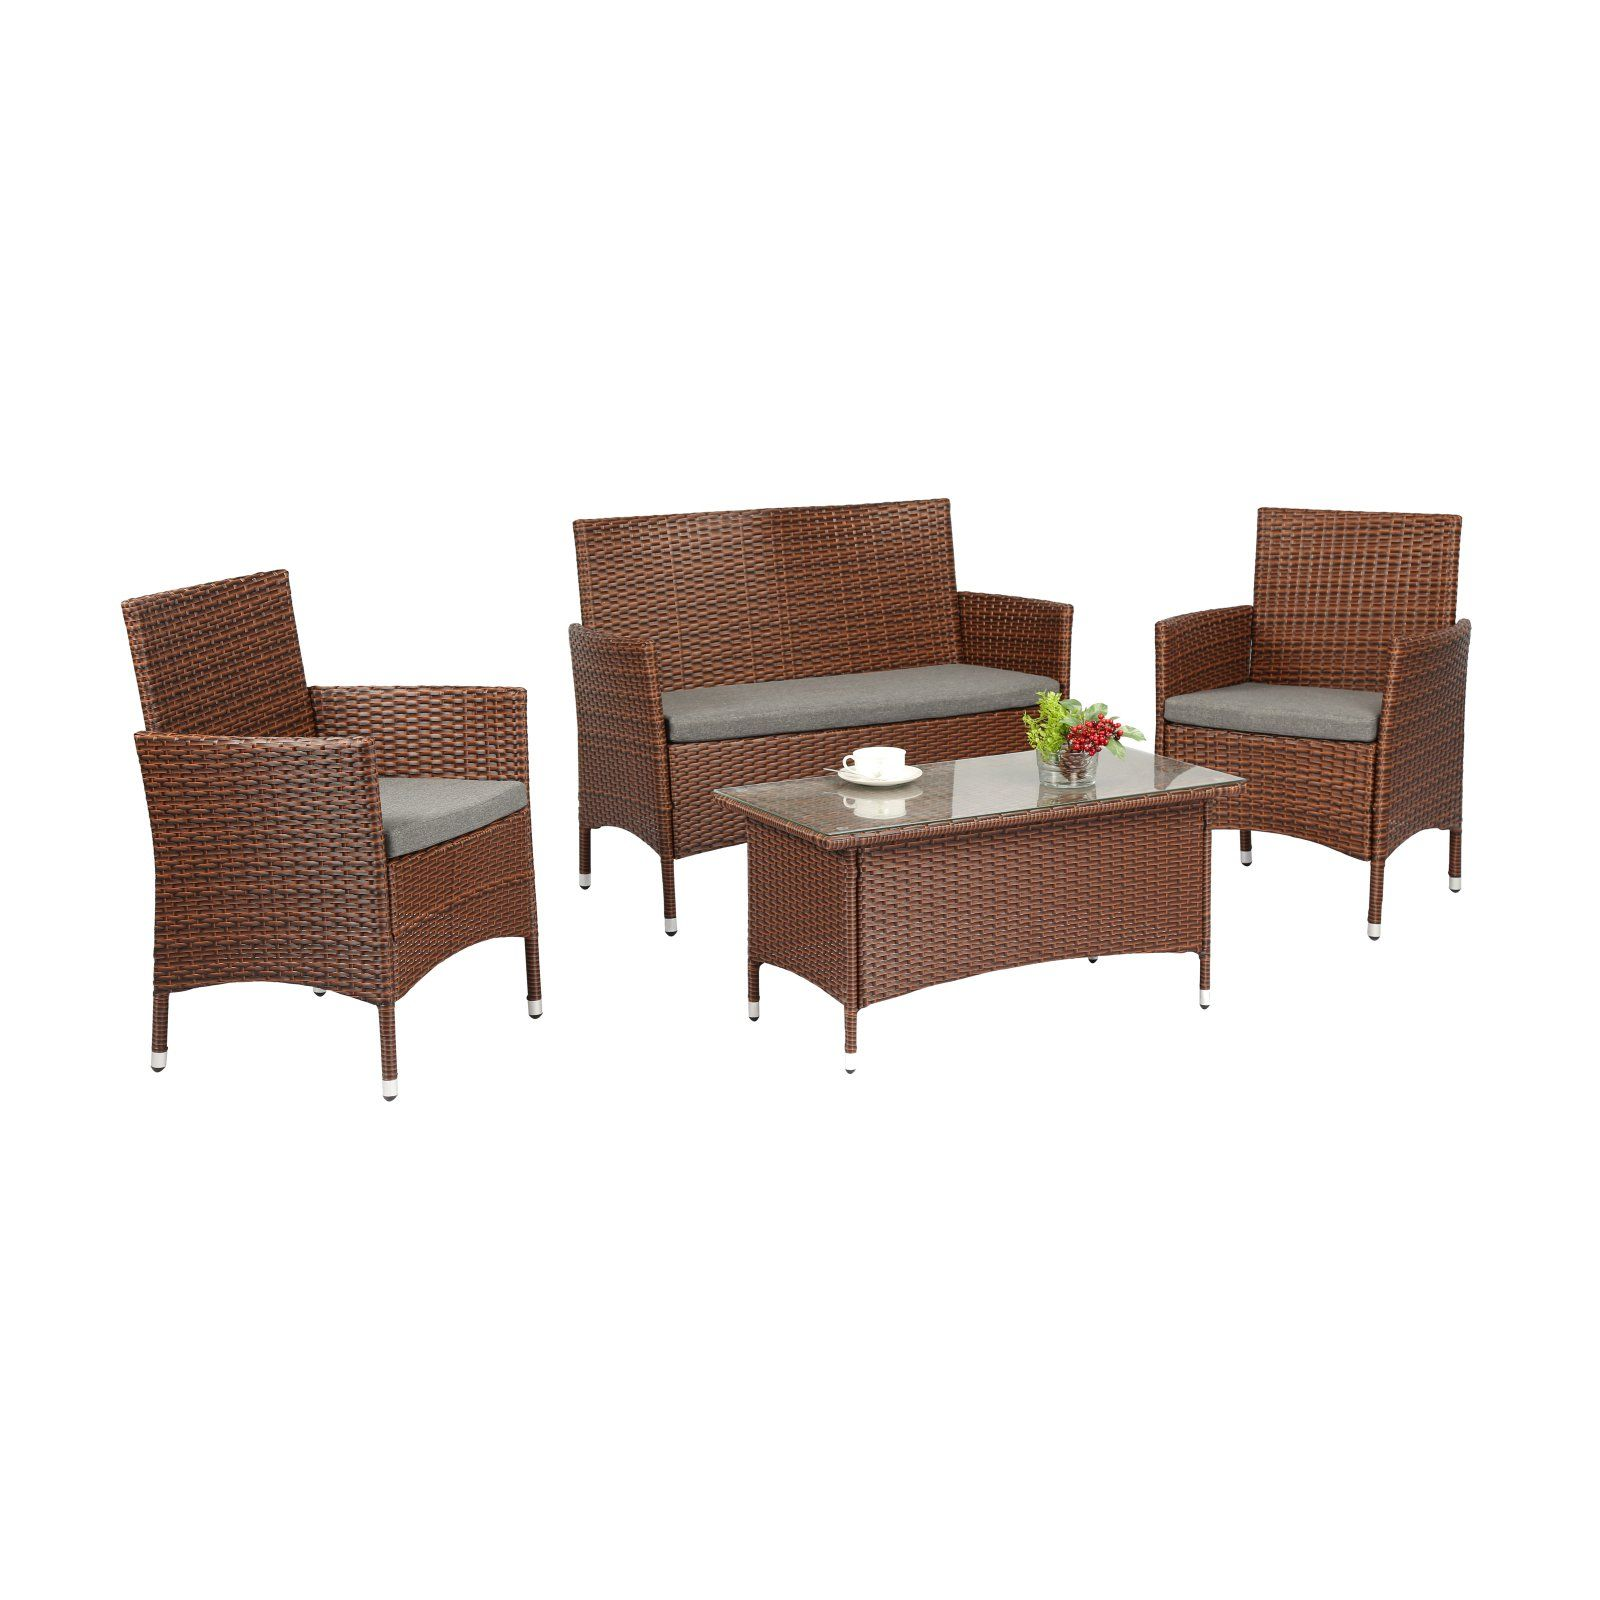 Astounding Outdoor Baner Garden Wicker 4 Piece Patio Conversation Set Ncnpc Chair Design For Home Ncnpcorg